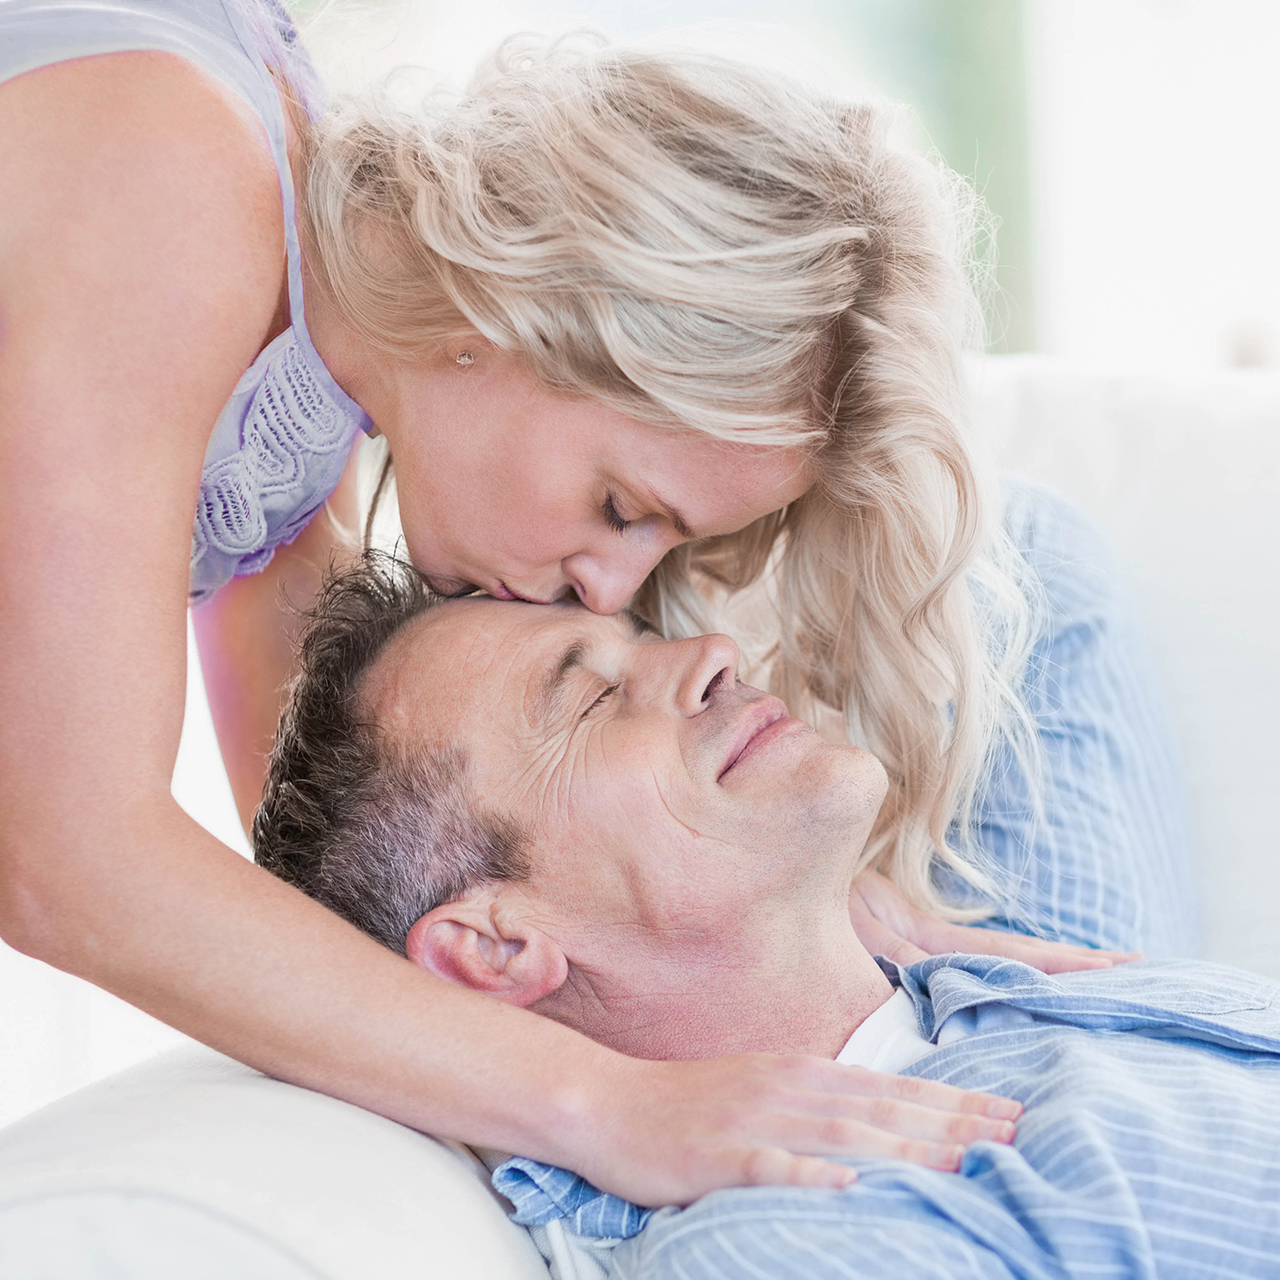 A woman gently kisses a smiling man on the forehead